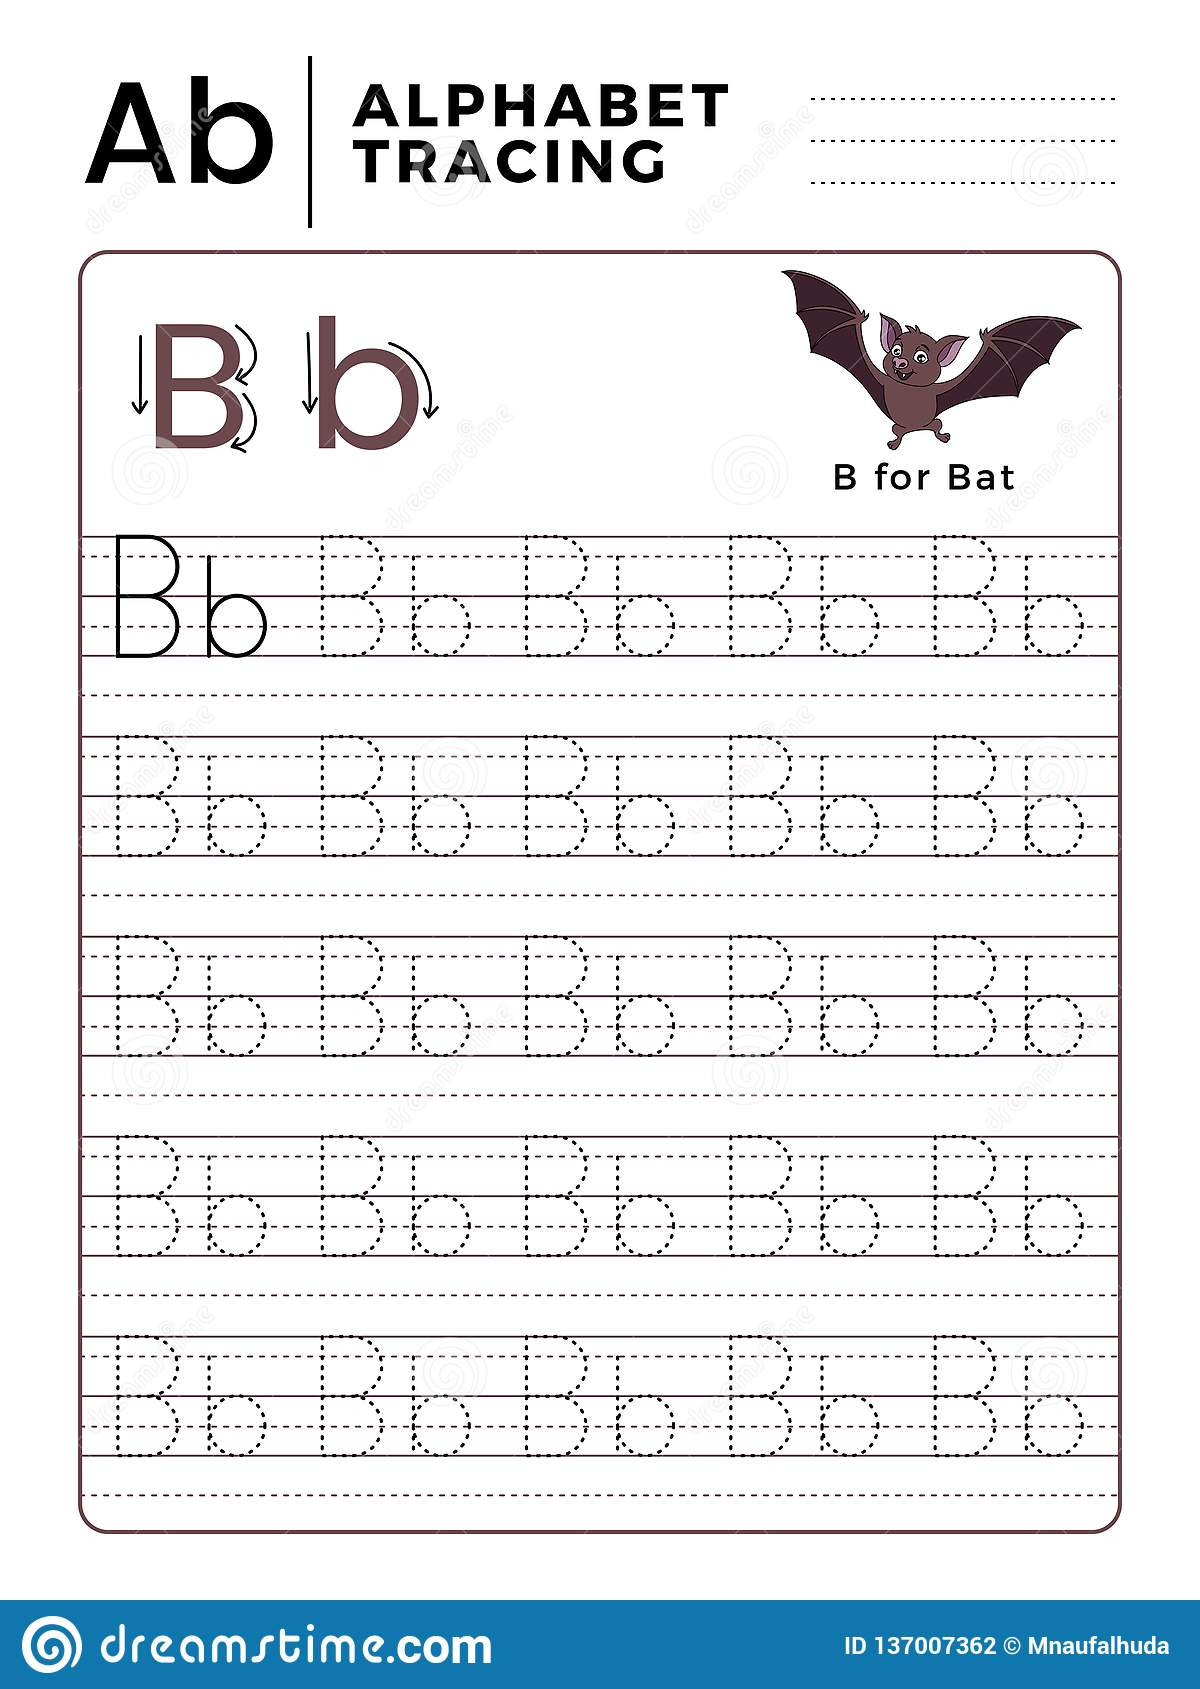 Letter B Alphabet Tracing Book With Example And Funny Bat